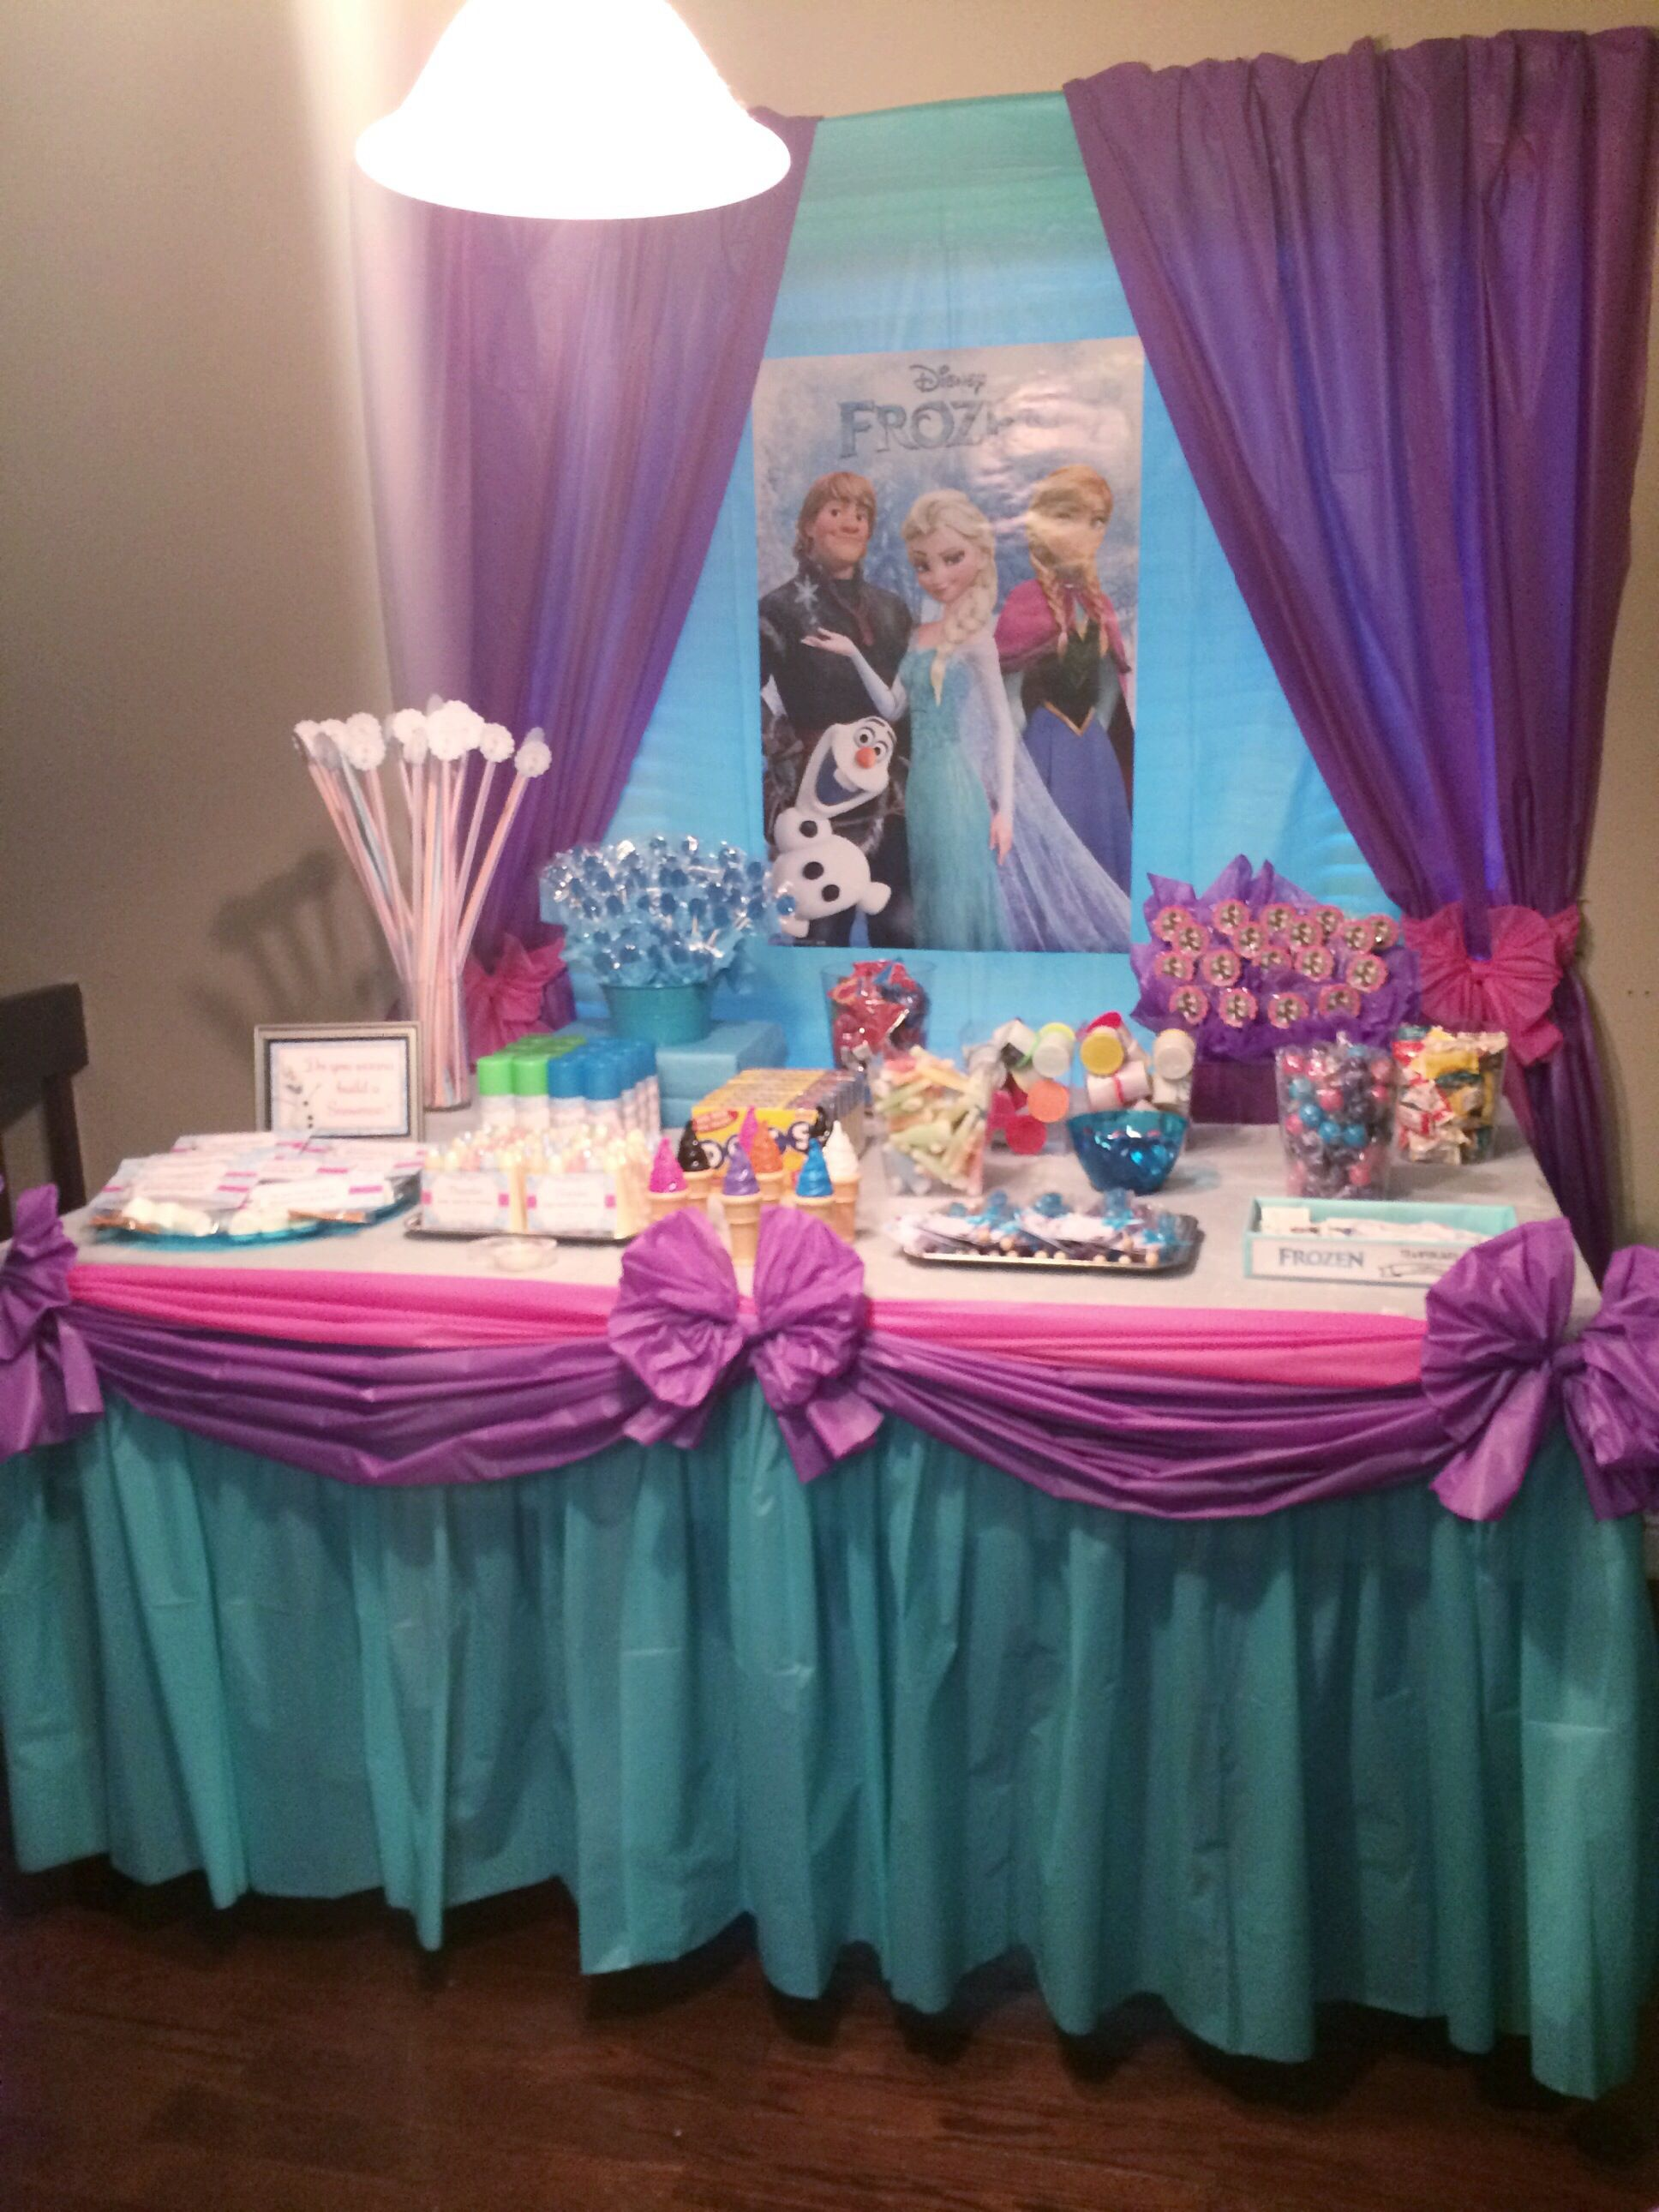 Frozen Birthday Party Ideas Candy Buffet Cake Table With Anna And Elsa Poster Great Use Of Plastic Cloths